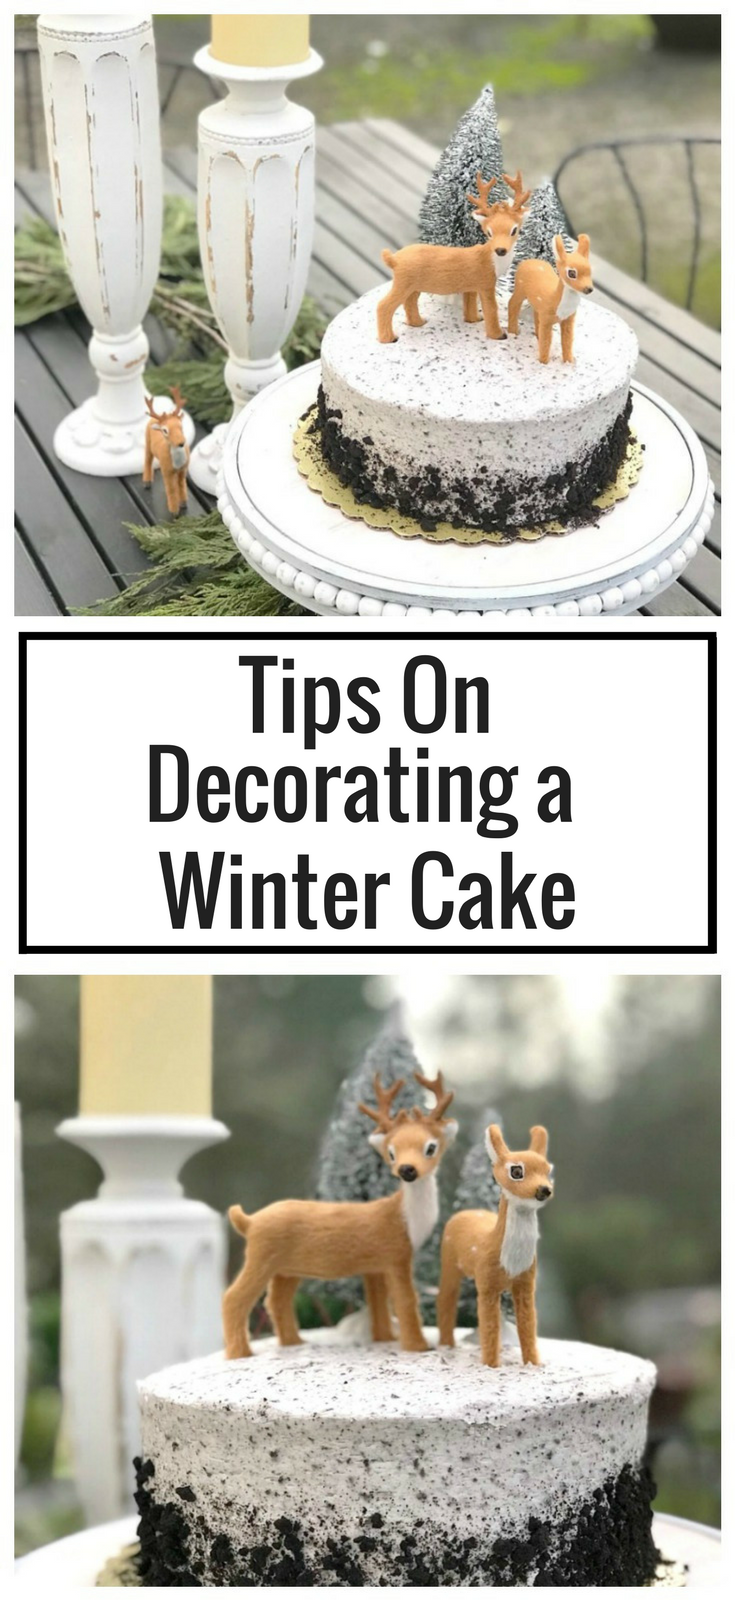 How to Decorate a Store Bought Cake for a Winter Birthday